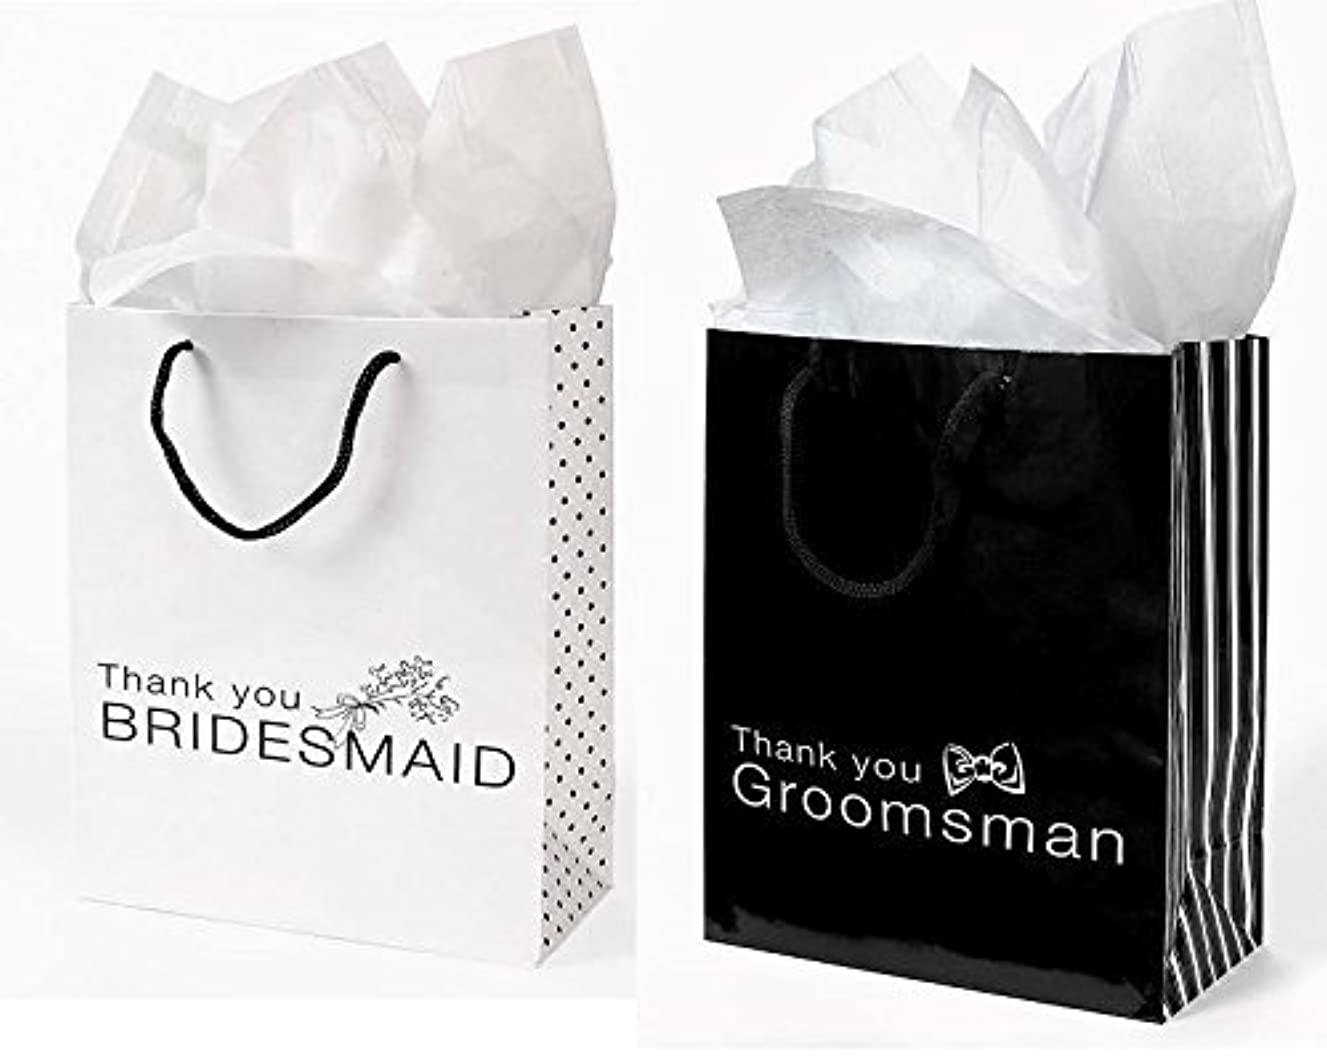 12 Pc Wedding party Gift Bag Assortment - Includes 6 Bridesmaid 6 Groomsman (MIXED)